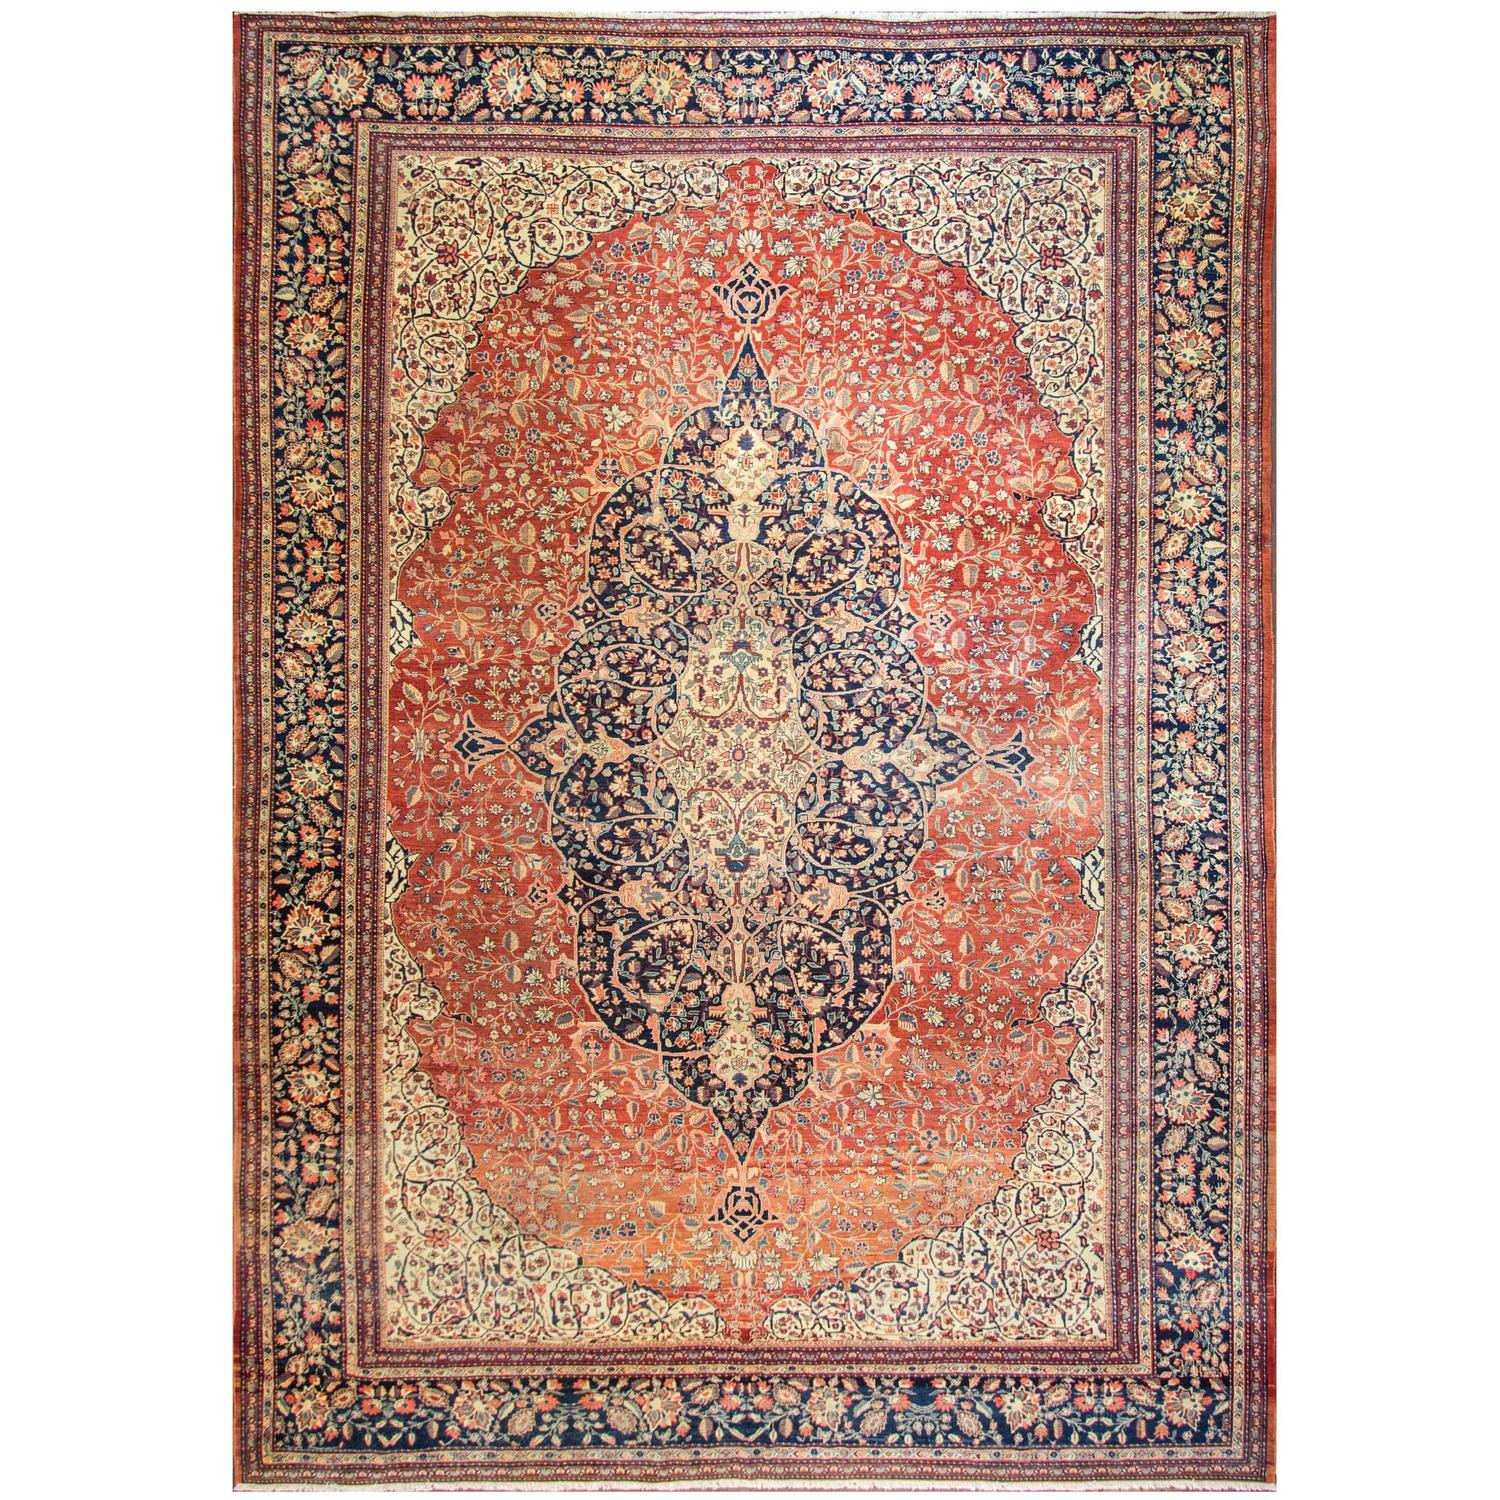 Amazing Sarouk Feraghan Carpet For Sale At 1stdibs